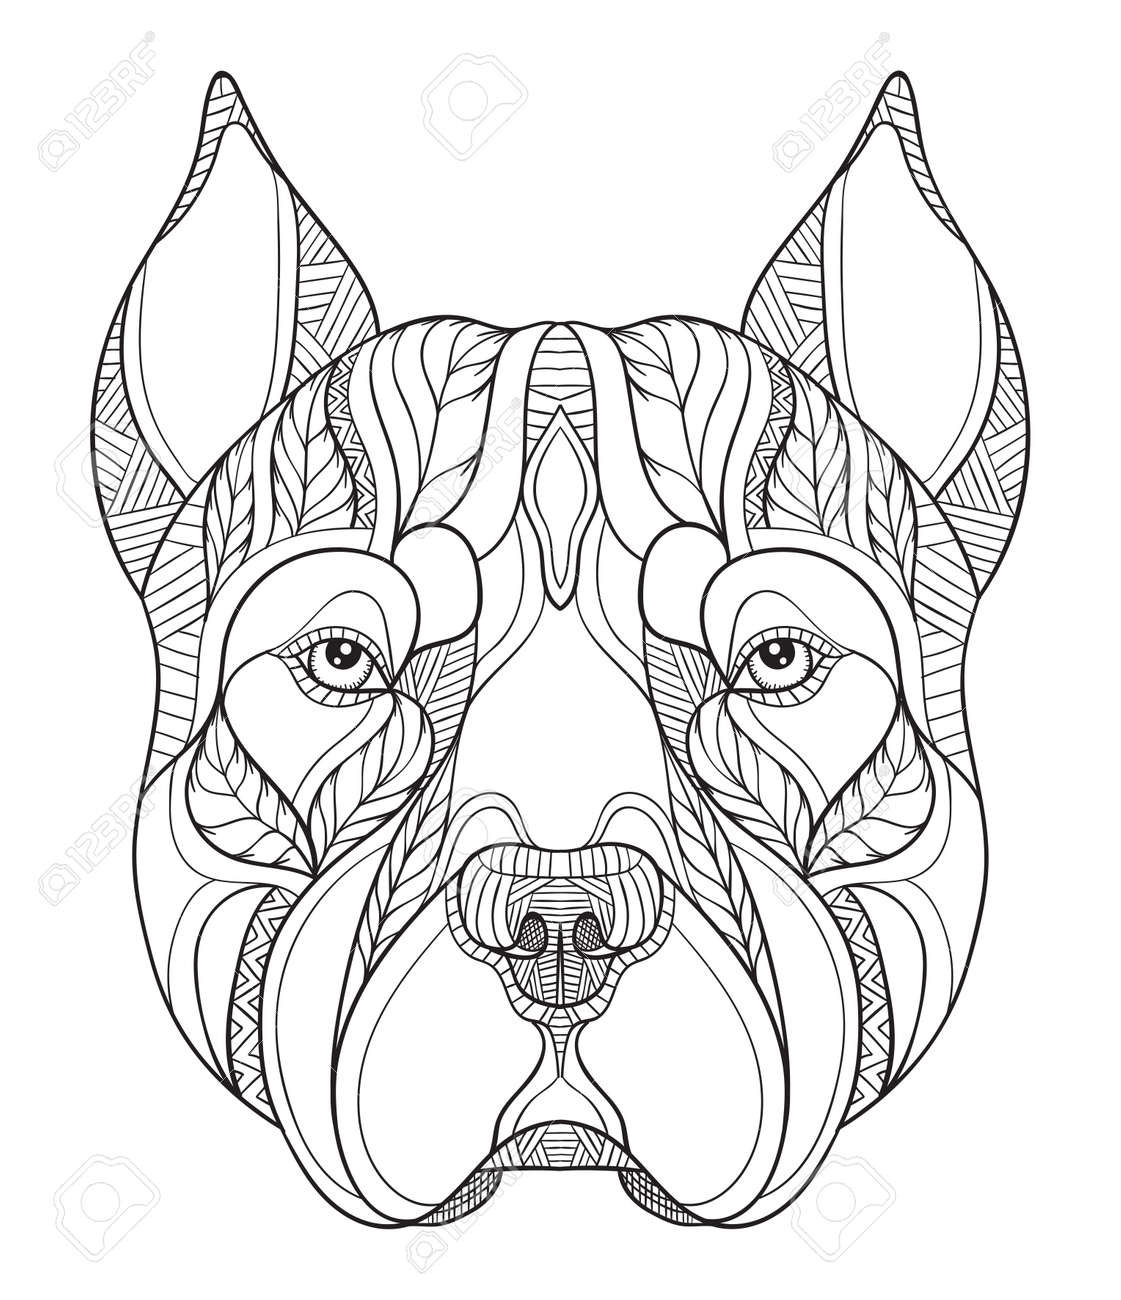 Pitbull Terrier Cabeza Zentangle Estilizado, Vector, Ilustración ...